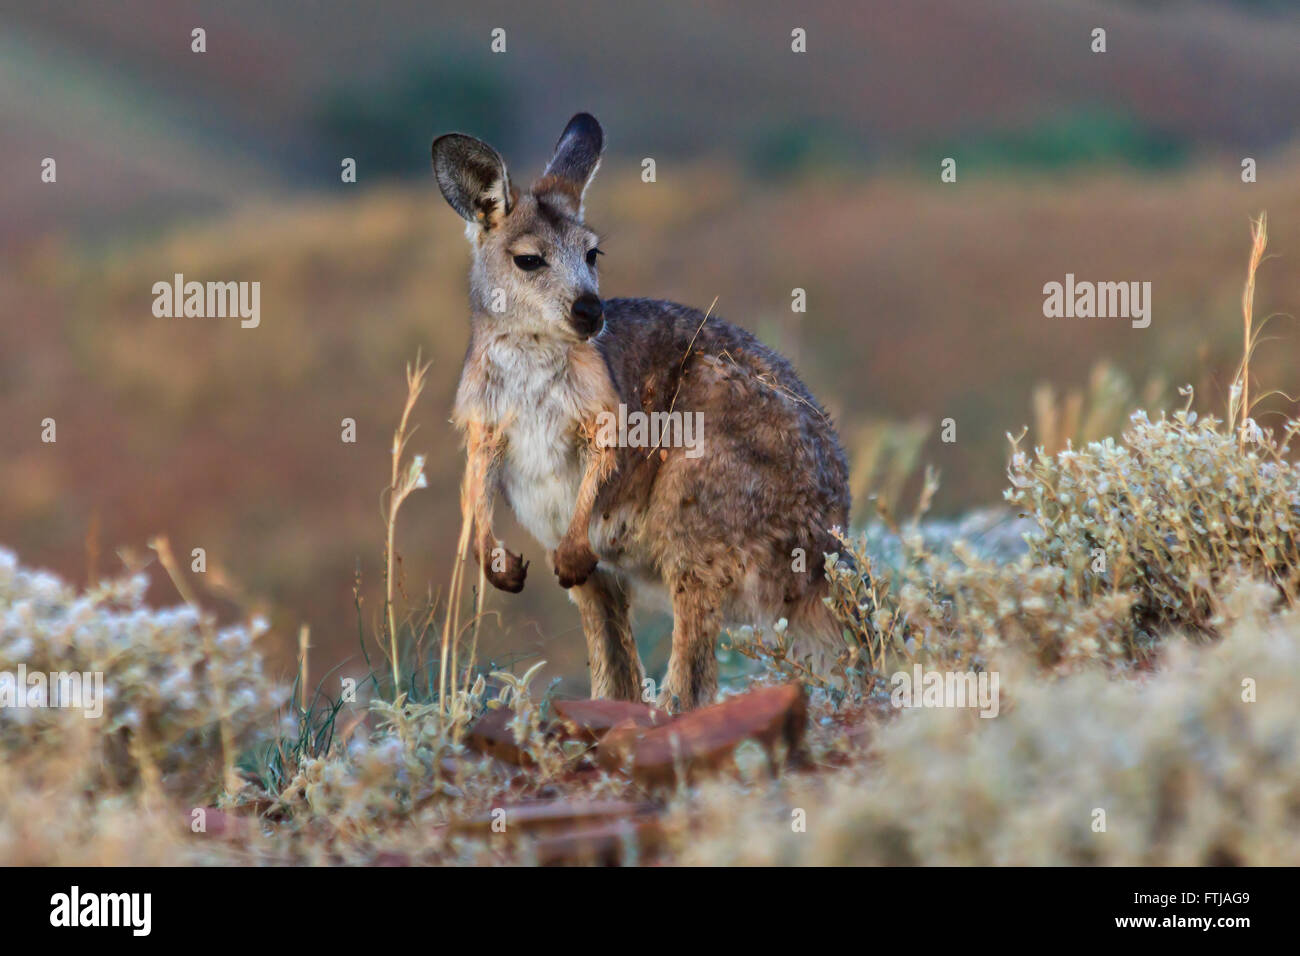 wild life animal kangaroo standing surrounded by natural habitat - grass and bushes in national park. - Stock Image